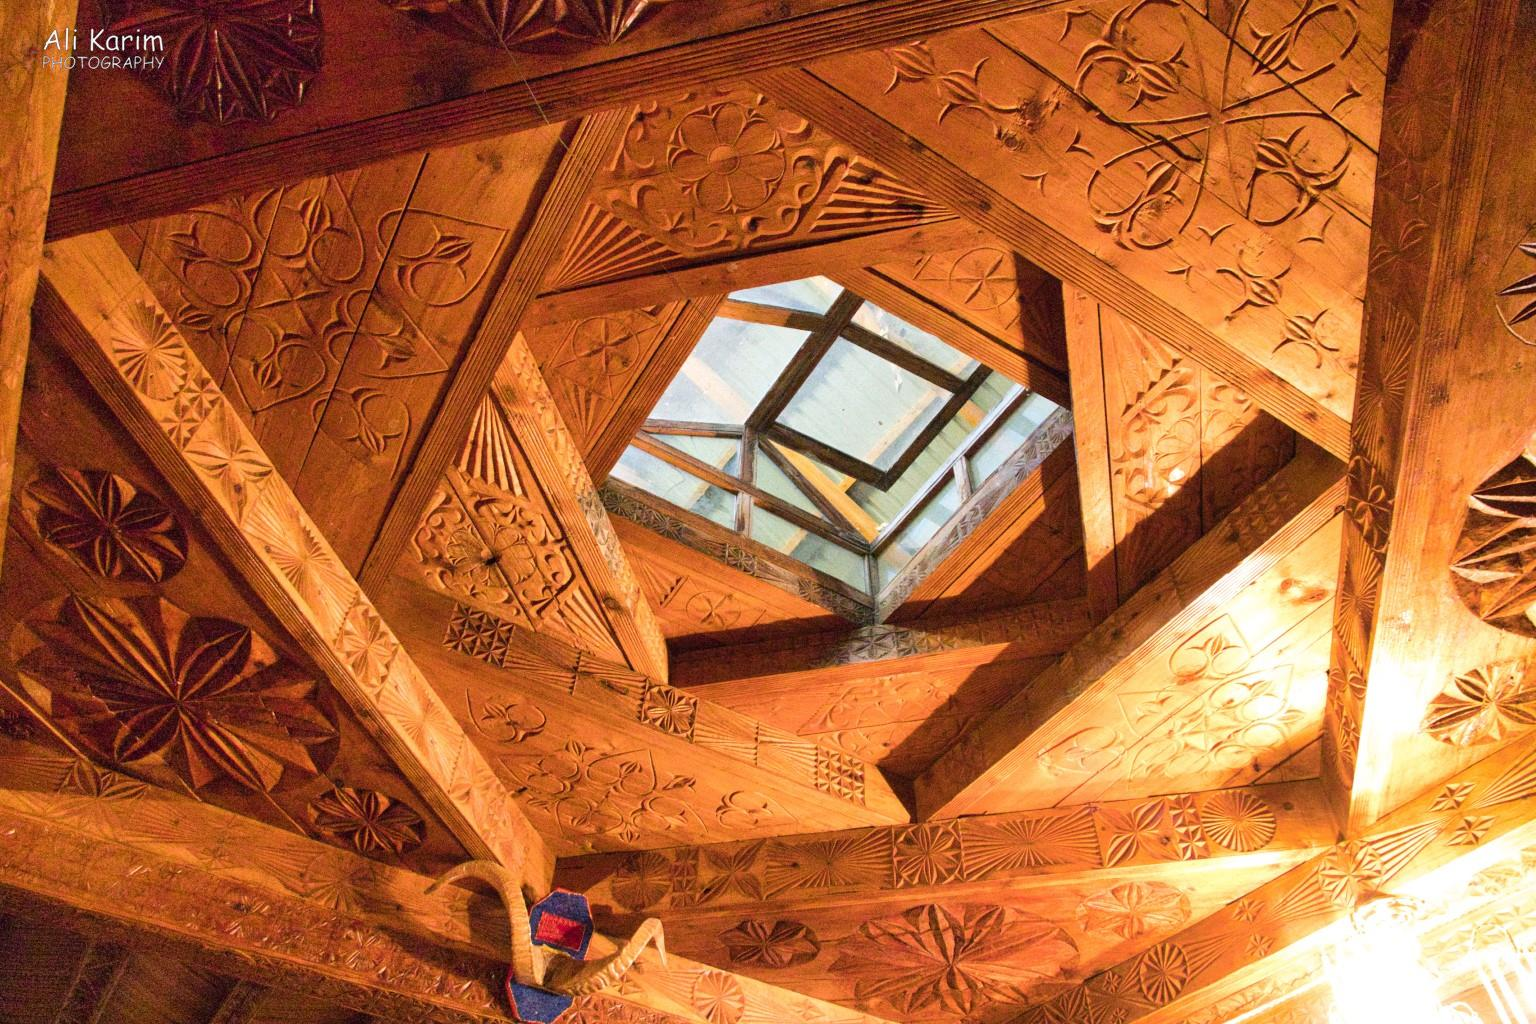 Langar, Bulunkul Tajikistan, Typical celling structure of Pamiri houses, this design is supposed to withstand earthquakes better. Note all the designs carved in this ceiling of the Prayer Hall